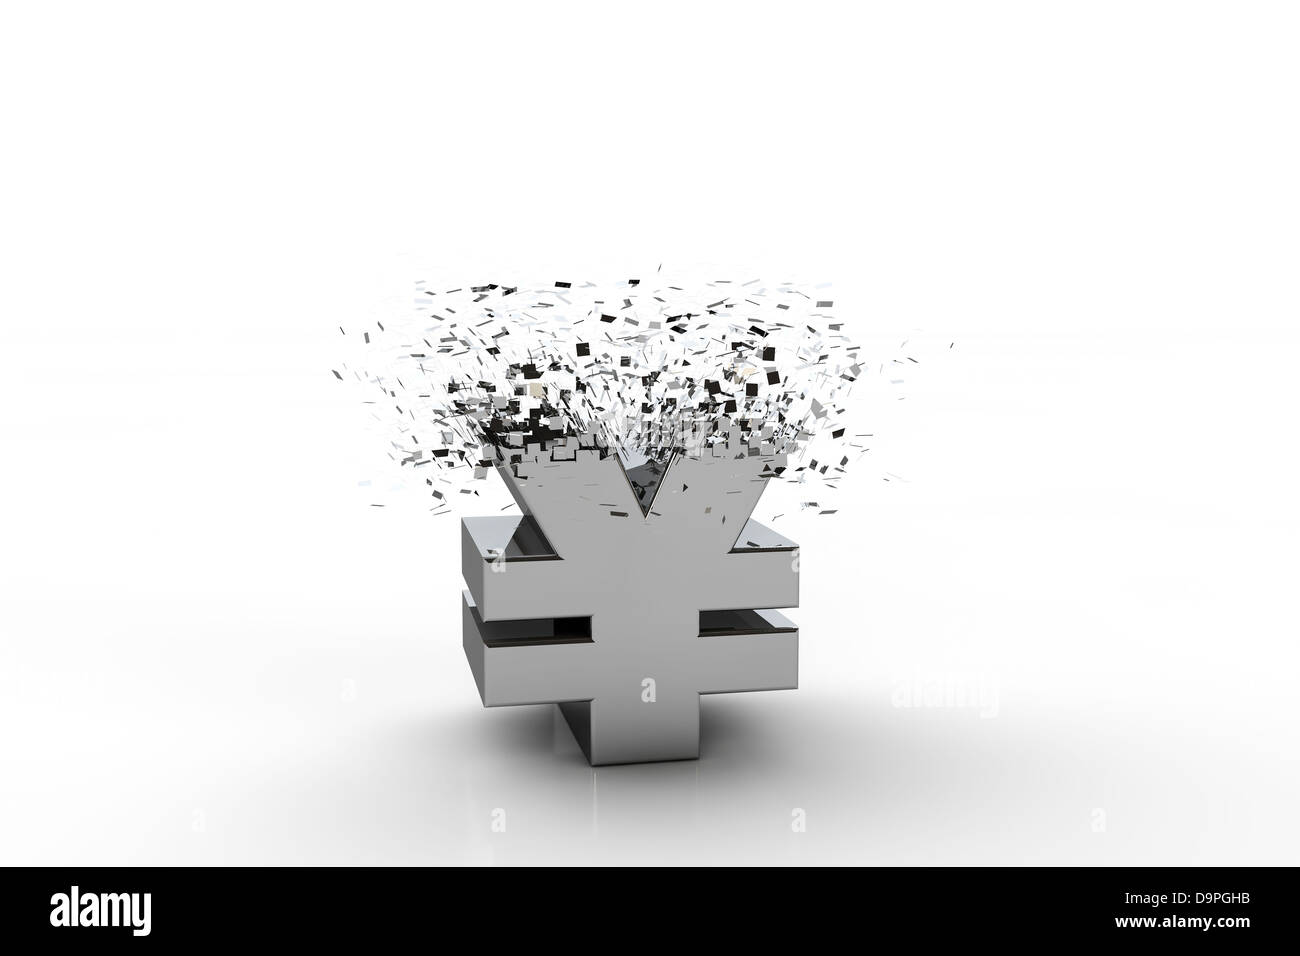 3d yen currency symbol exploding over white background stock 3d yen currency symbol exploding over white background biocorpaavc